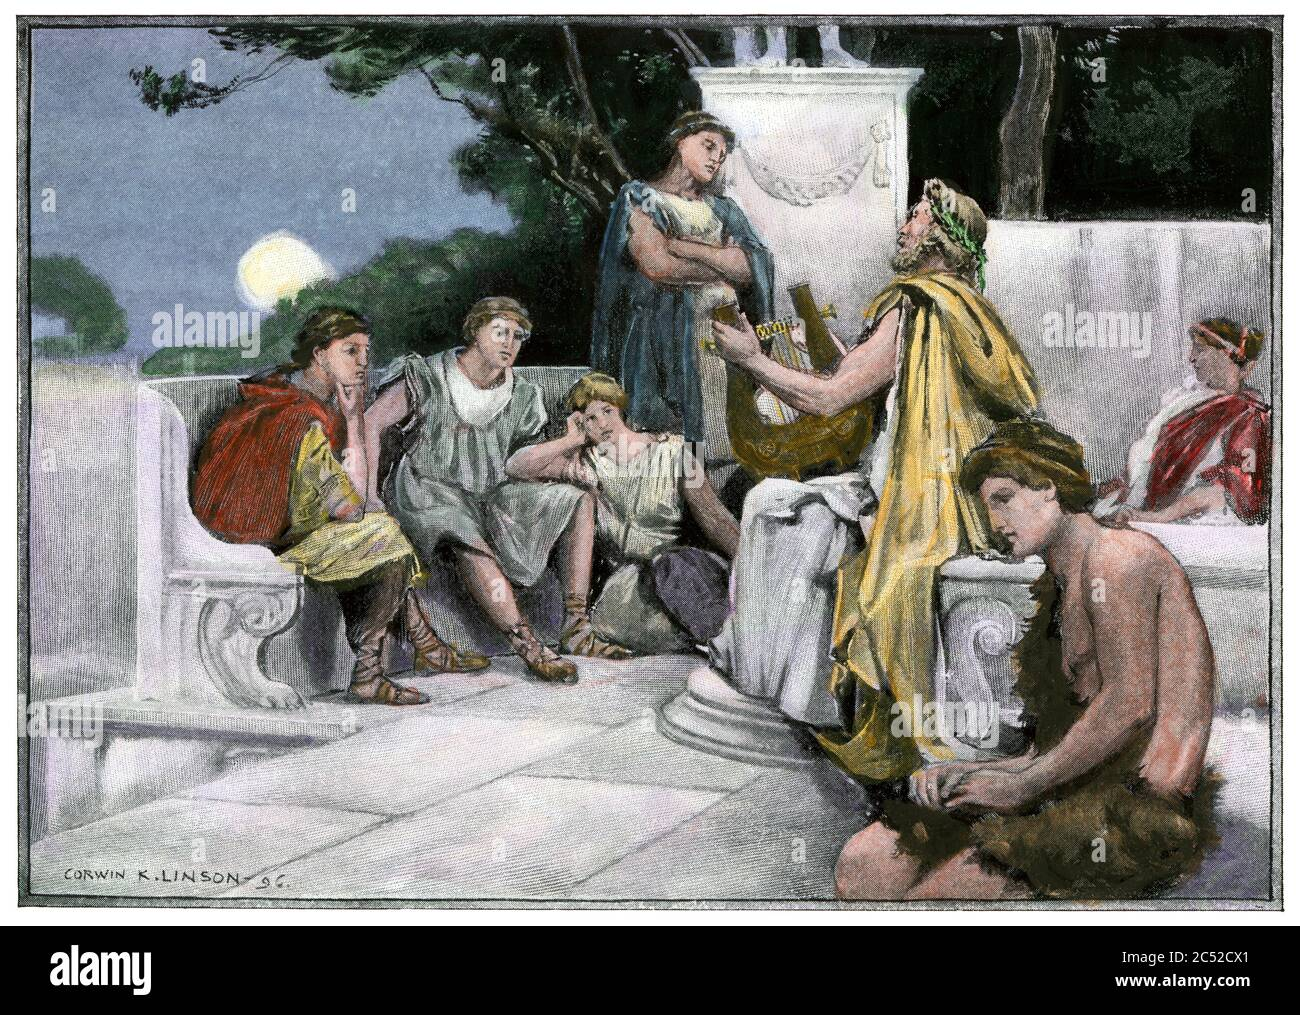 Ancient Greeks listening to the poet Pindar and his lyre. Hand-colored halftone of an illustration Stock Photo